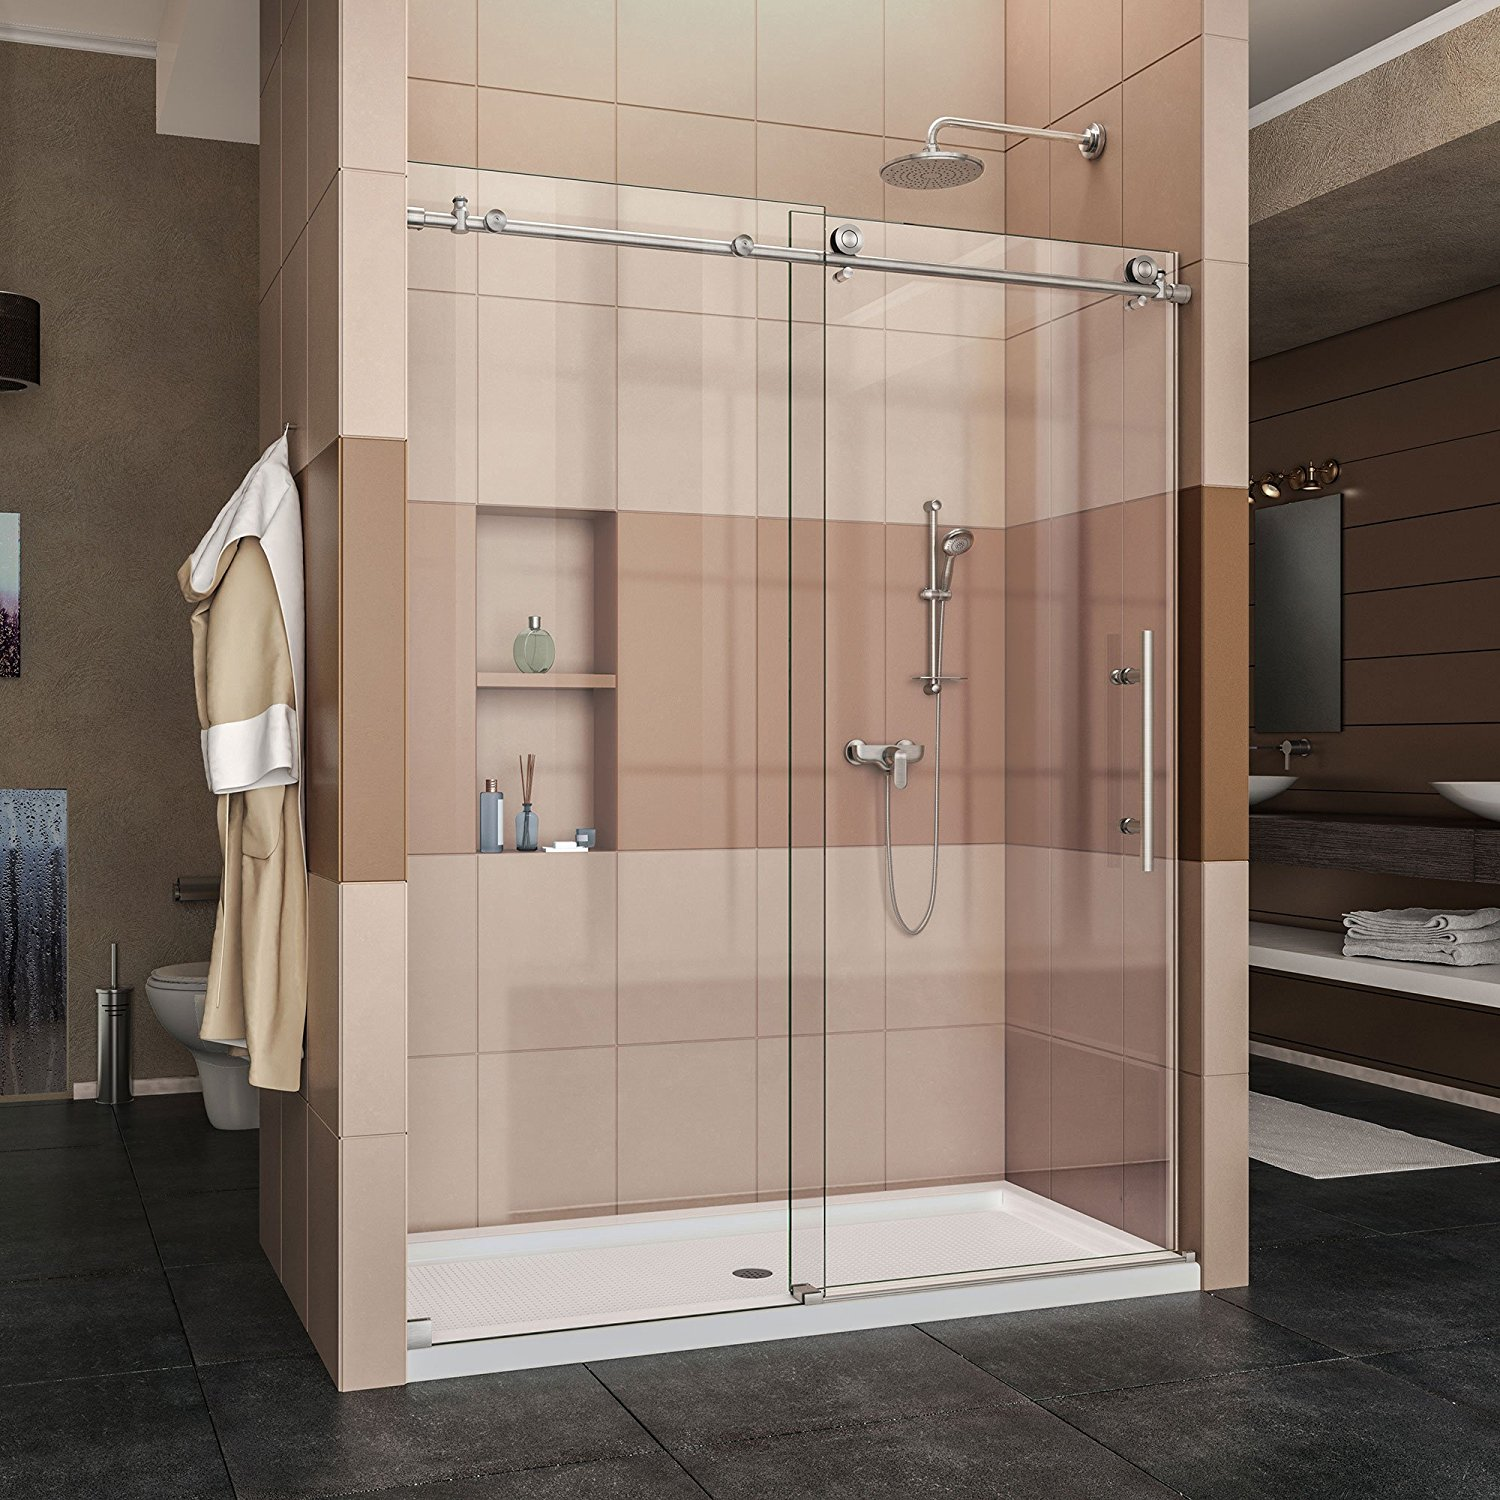 "DreamLine Enigma-X 56-60 in. Width, Frameless Sliding Shower Door, 3/8"" Glass, Brushed Stainless Steel"